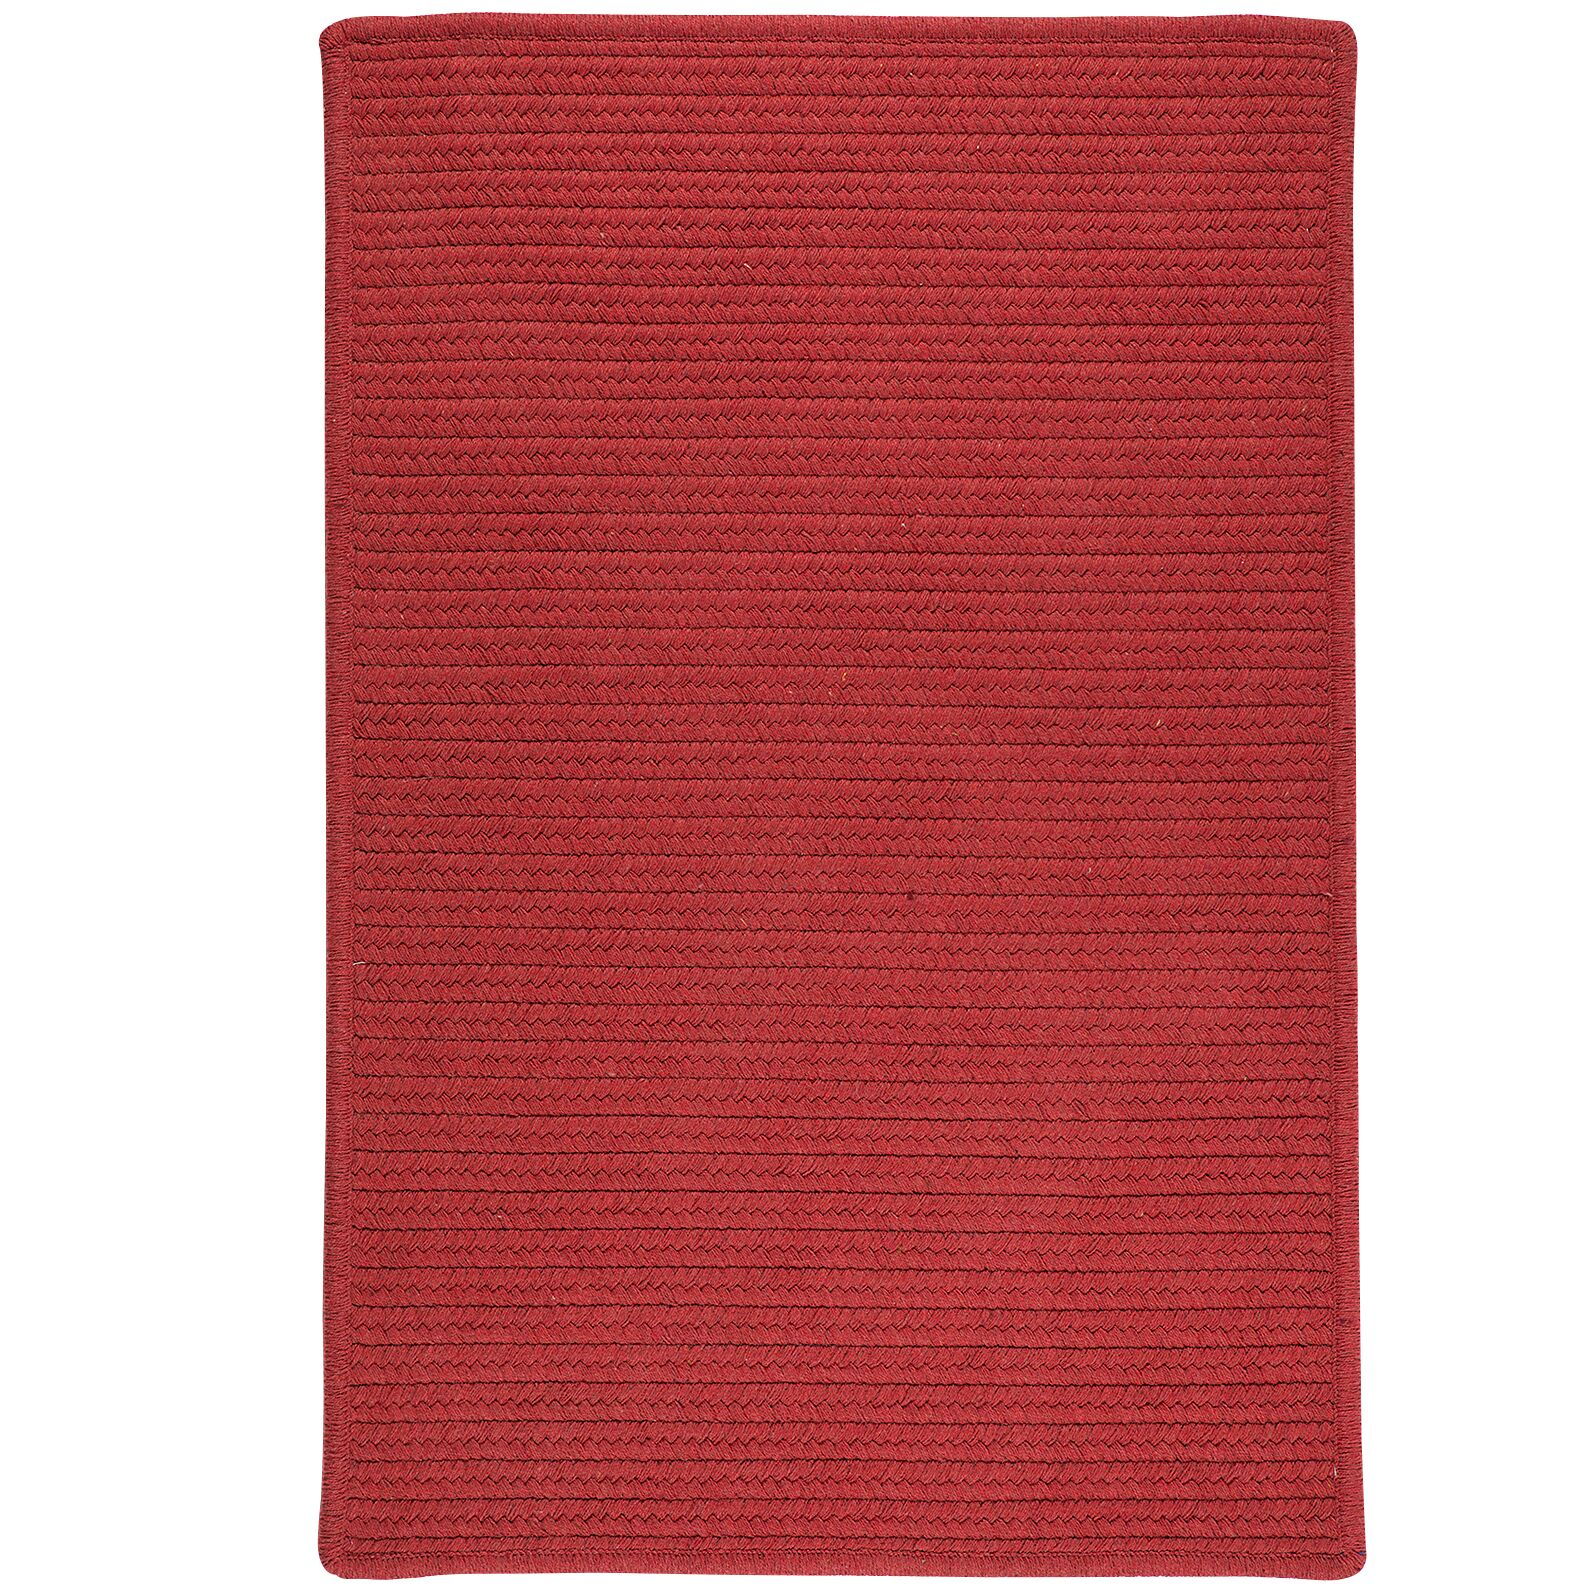 Hopseed Hand-Woven Red Indoor/Outdoor Area Rug Rug Size: 5' x 7'